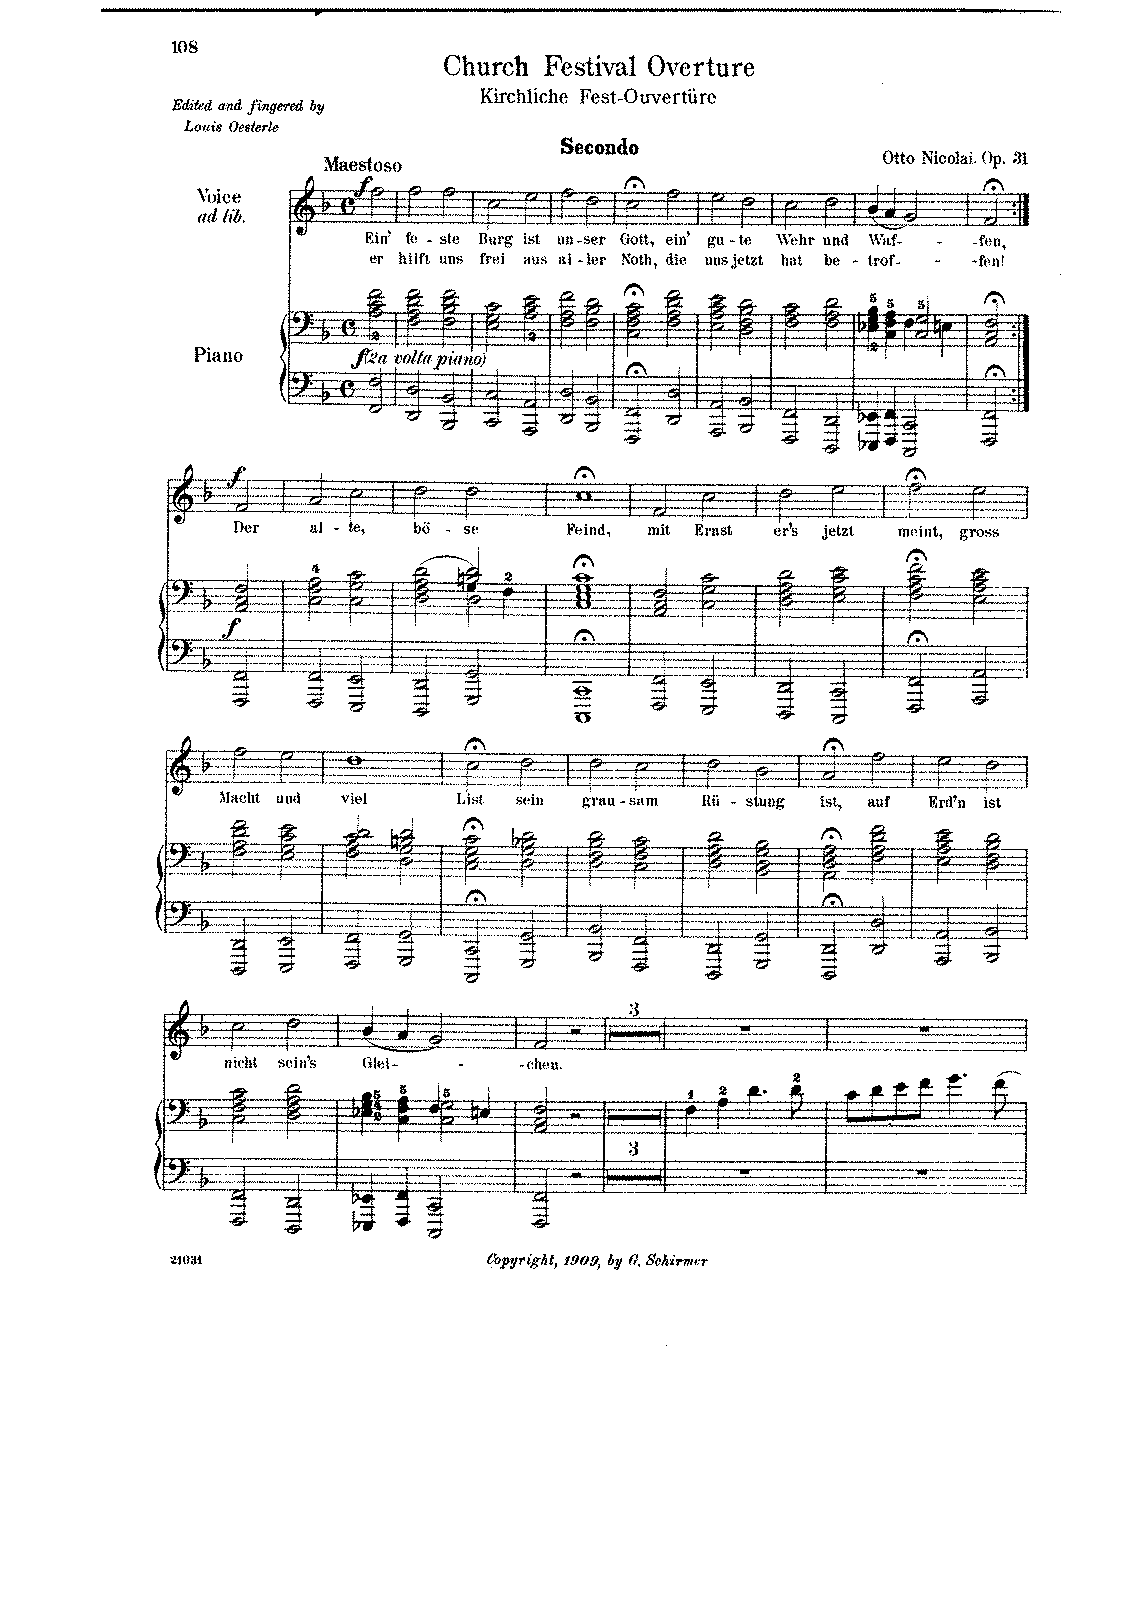 PMLP282888-Nicolai Church Festival overture Op.31 piano4hands.pdf